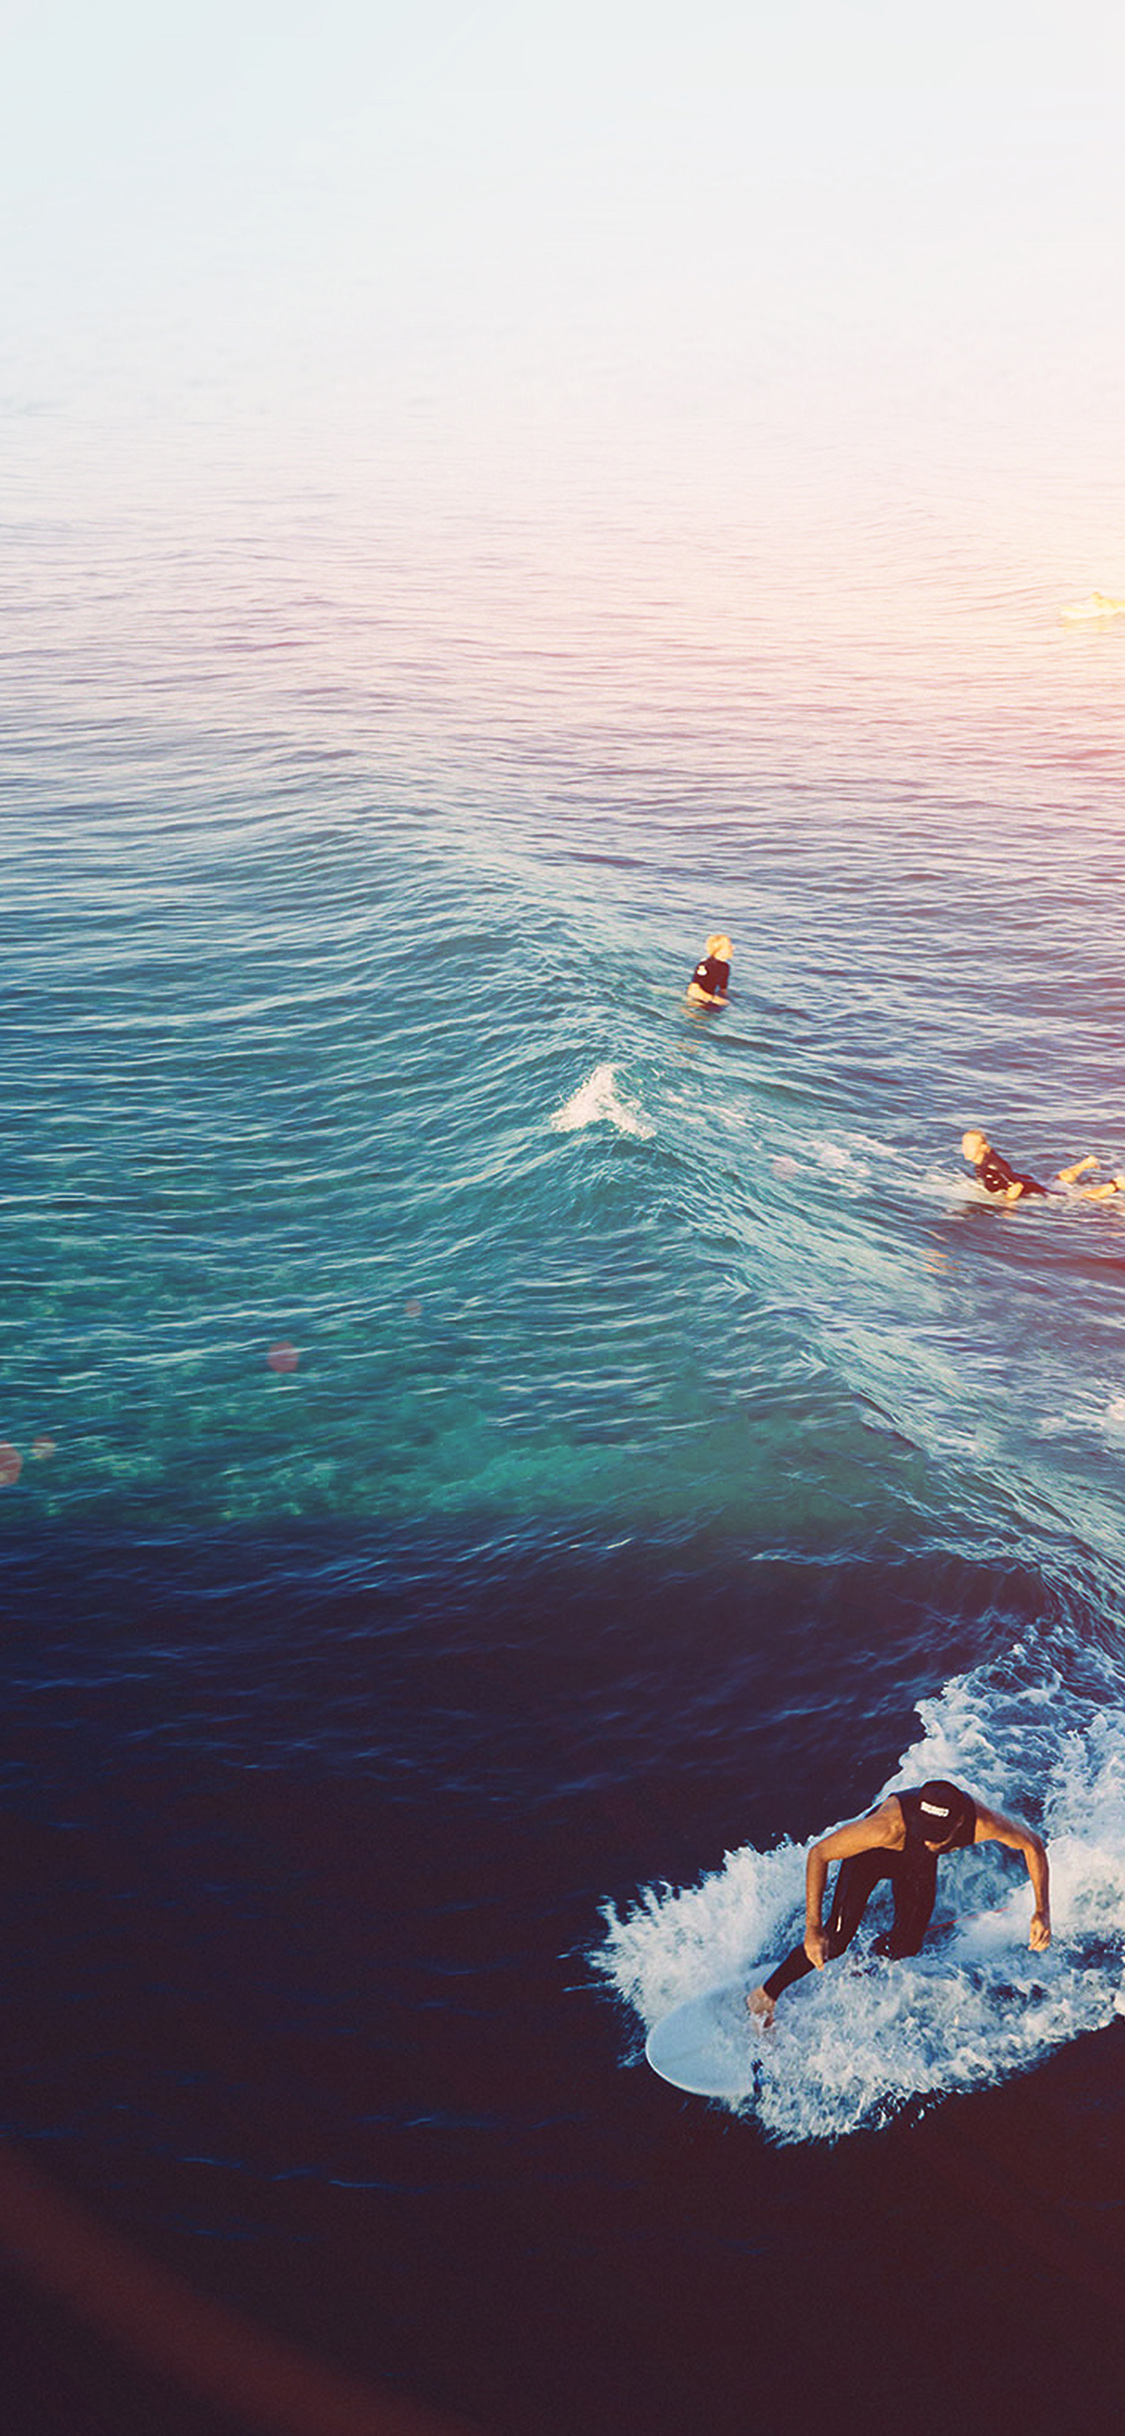 Classic Iphone Wallpaper For Iphone X Ms59 Surfing Wave Summer Sea Ocean Flare Wallpaper